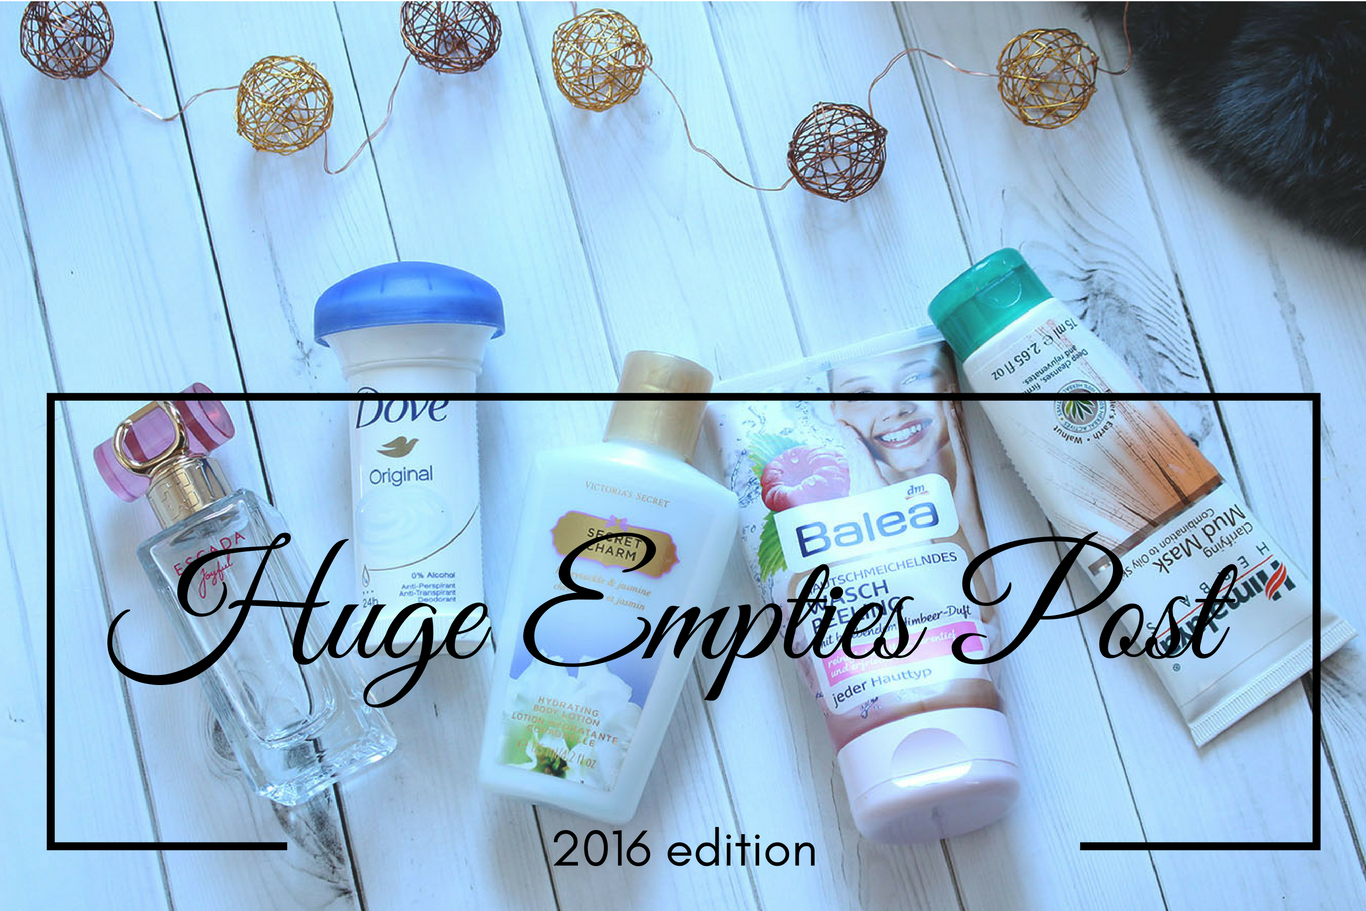 Huge Empties Post